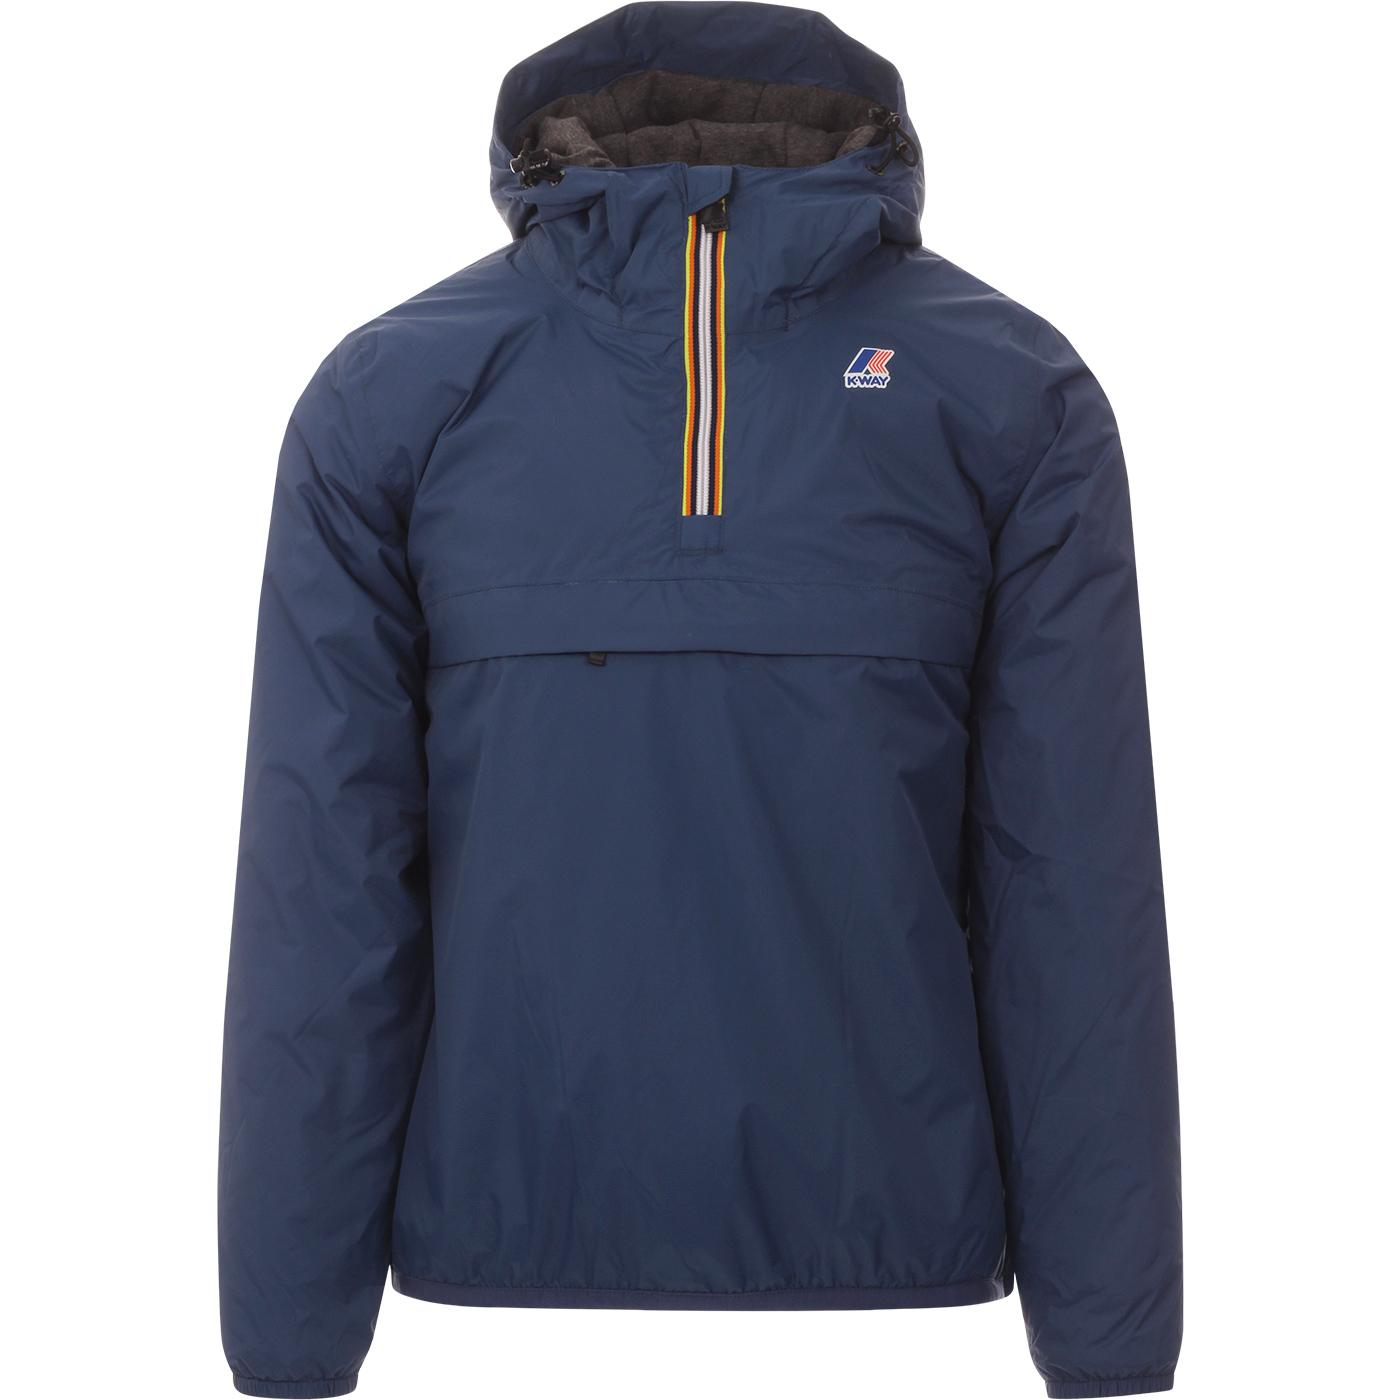 Leon K-WAY Retro Overhead Padded Jacket BD